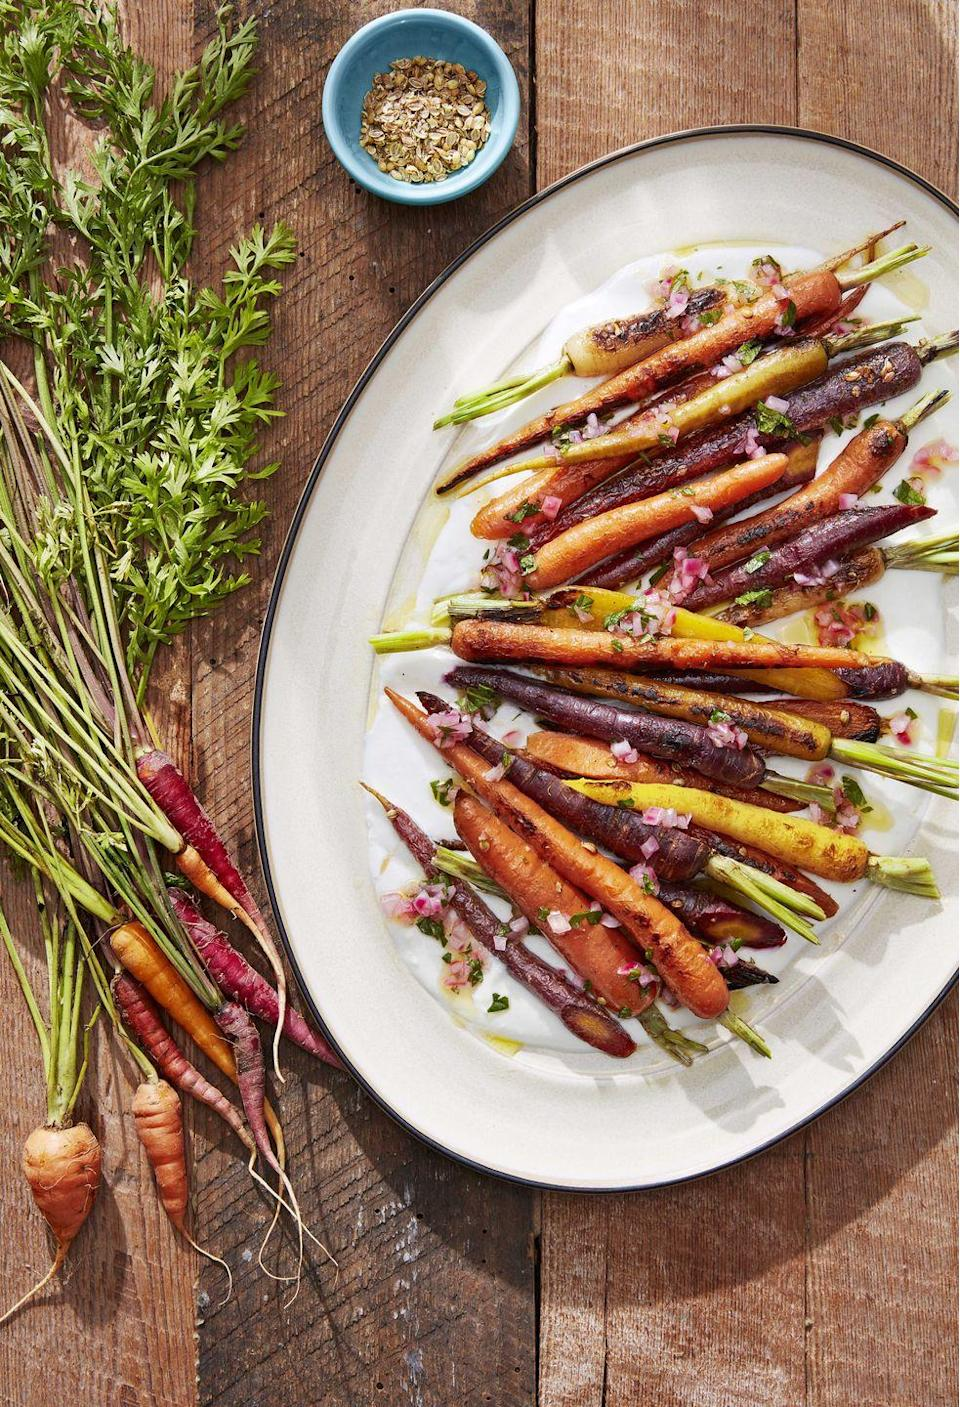 """<p>Add some color to your barbecue spread with this rainbow-hued recipe.</p><p><strong><a href=""""https://www.countryliving.com/food-drinks/a28609650/coriander-roasted-carrots-recipe/"""" rel=""""nofollow noopener"""" target=""""_blank"""" data-ylk=""""slk:Get the recipe"""" class=""""link rapid-noclick-resp"""">Get the recipe</a></strong>.</p>"""